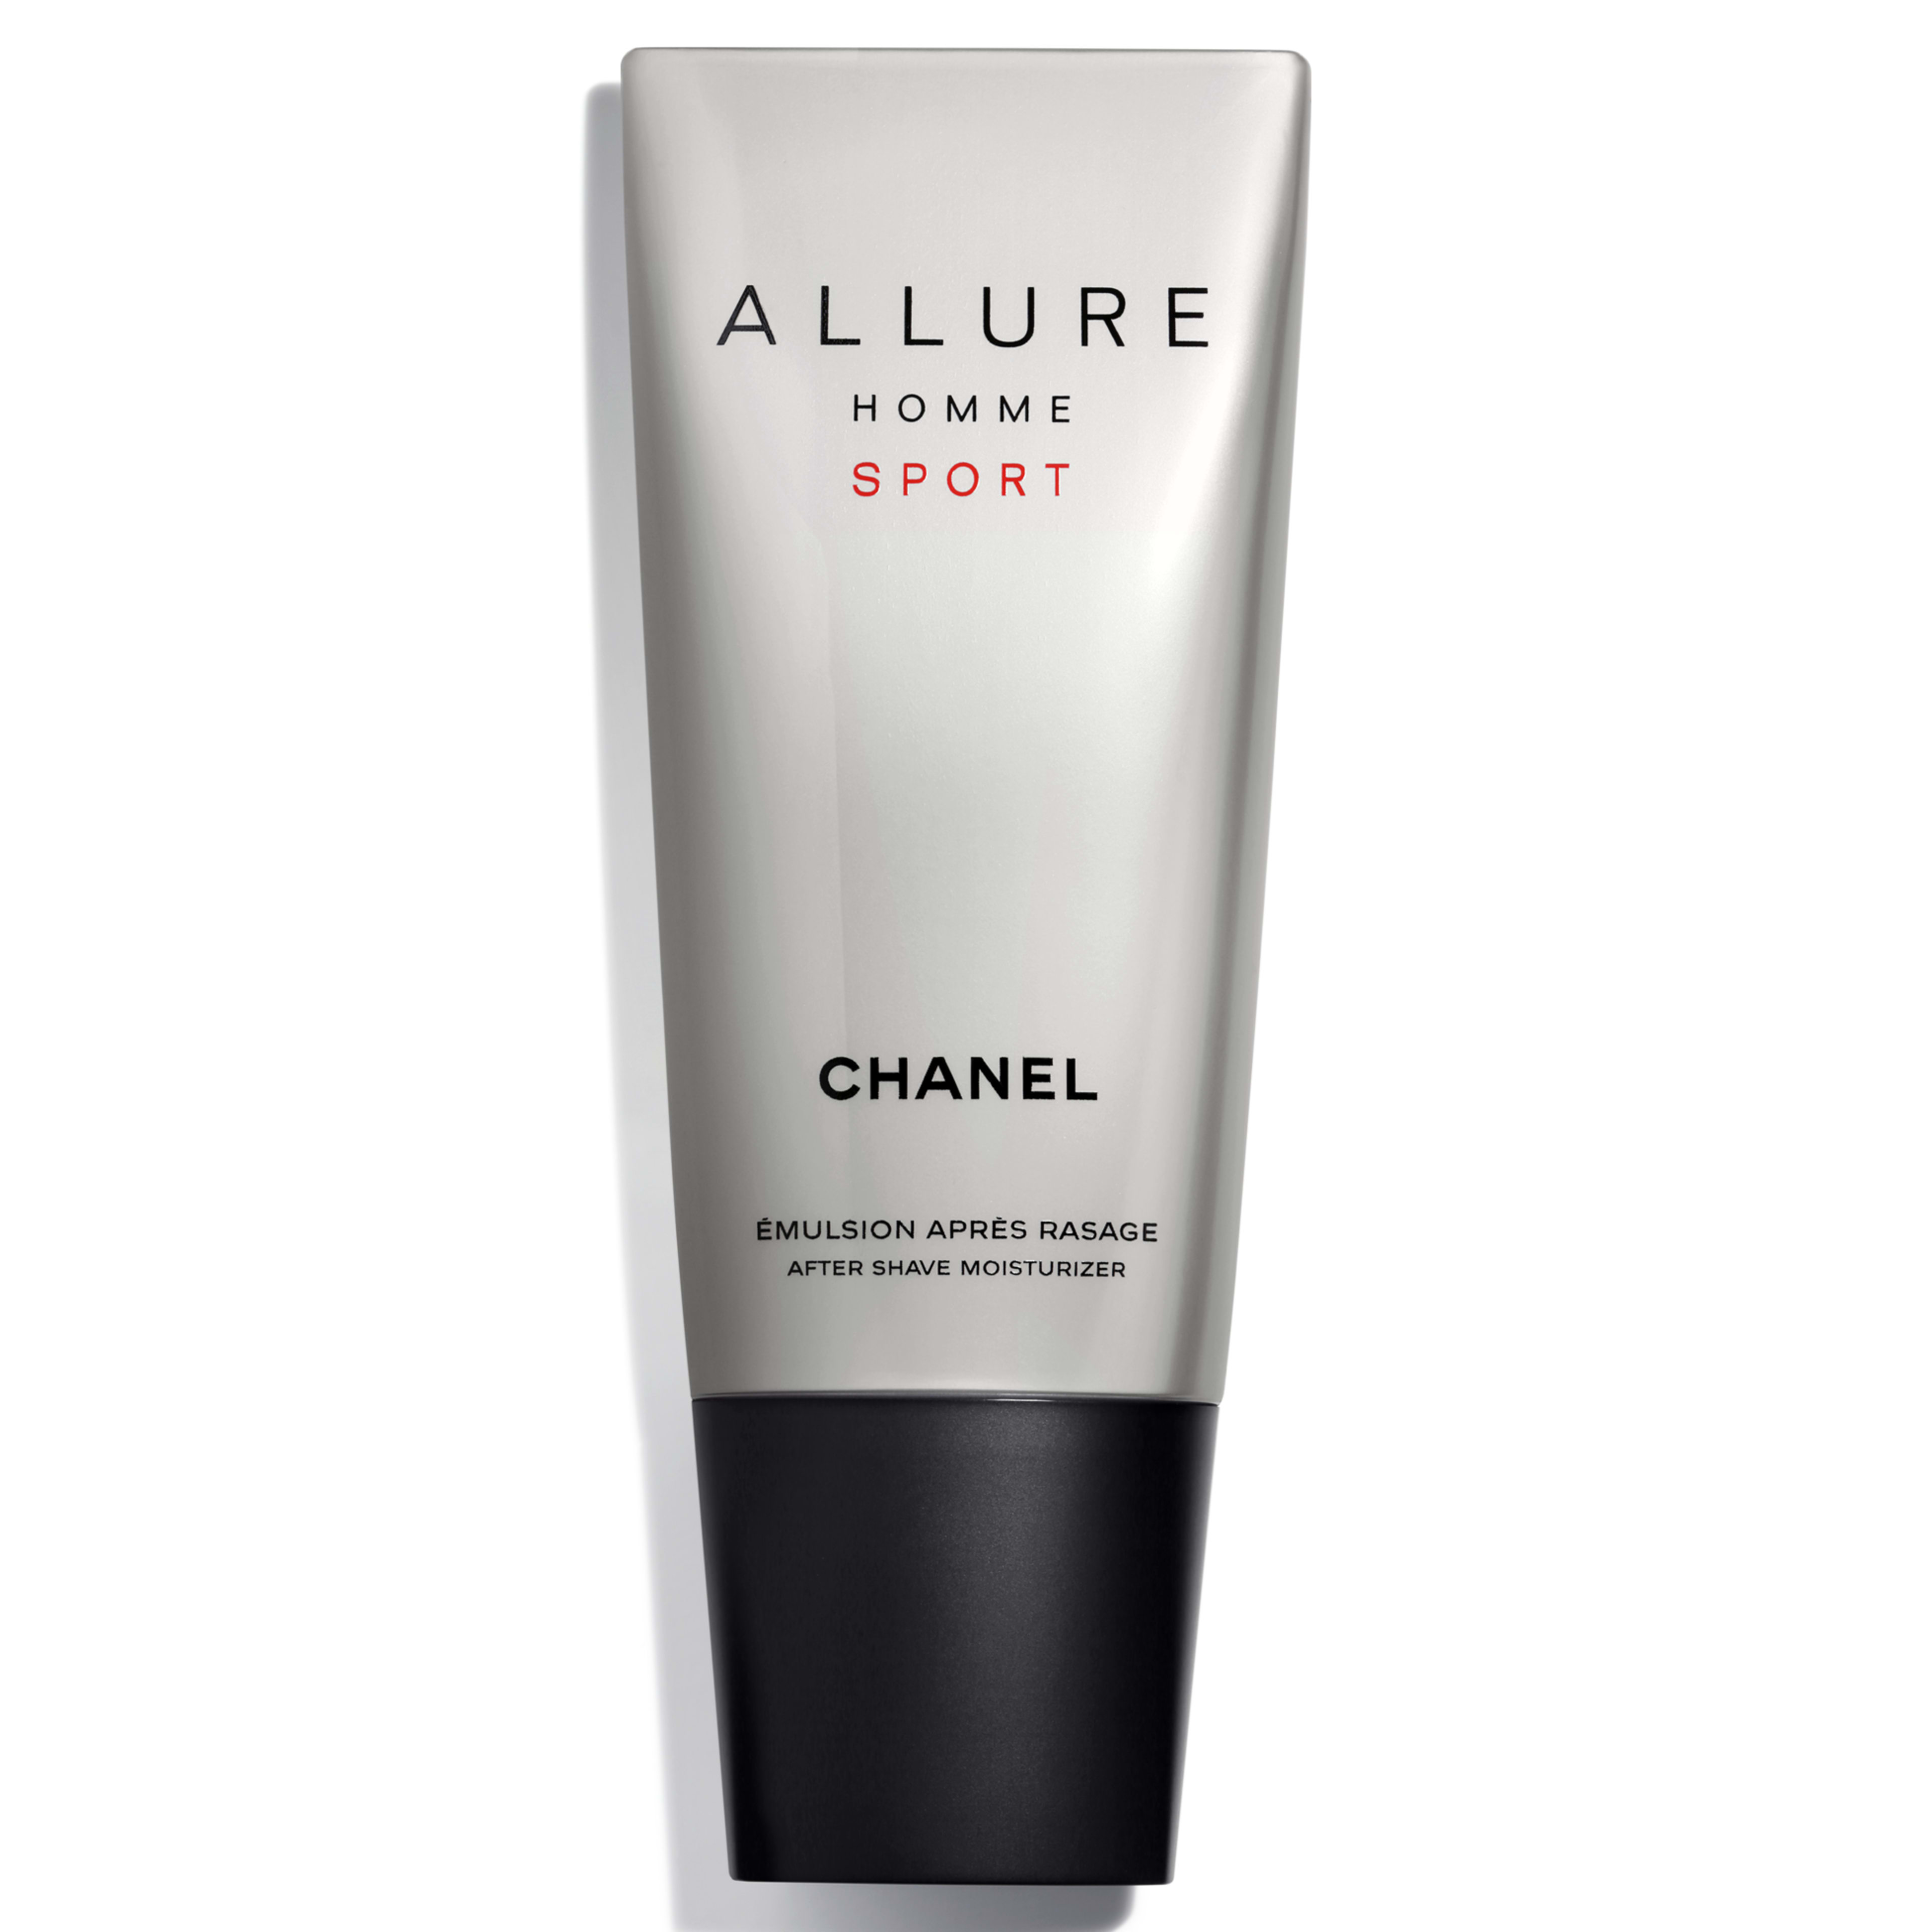 b423422fd98e ALLURE HOMME SPORT After Shave Moisturizer | CHANEL